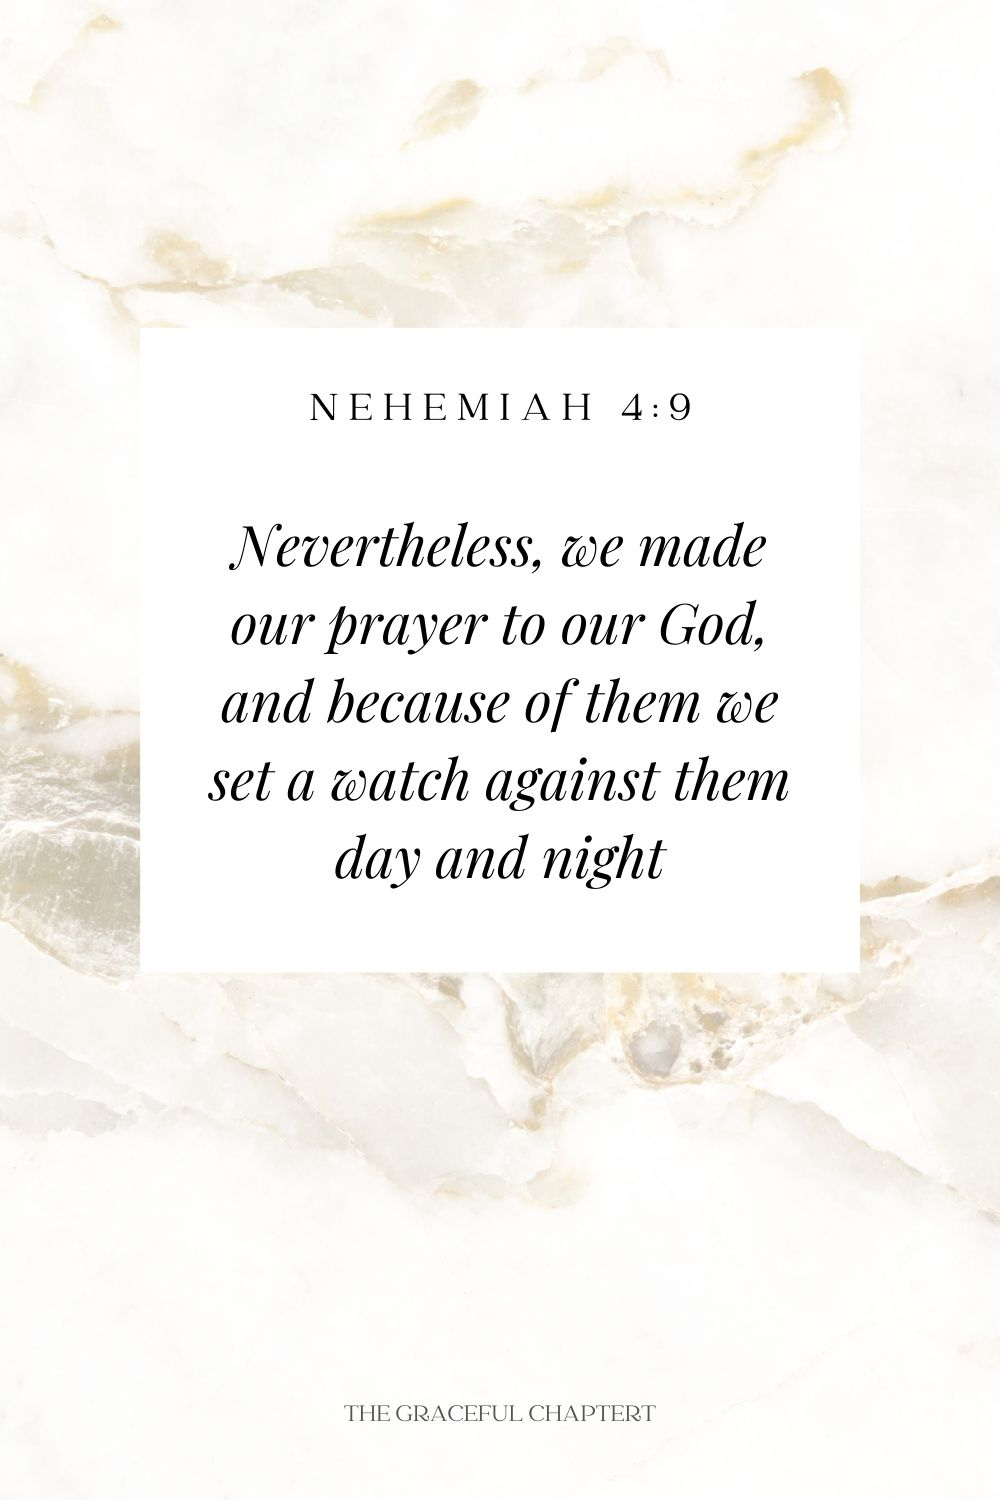 Nevertheless, we made our prayer to our God, and because of them we set a watch against them day and night Nevertheless, we made our prayer to our God, and because of them we set a watch against them day and night Nehemiah 4:9